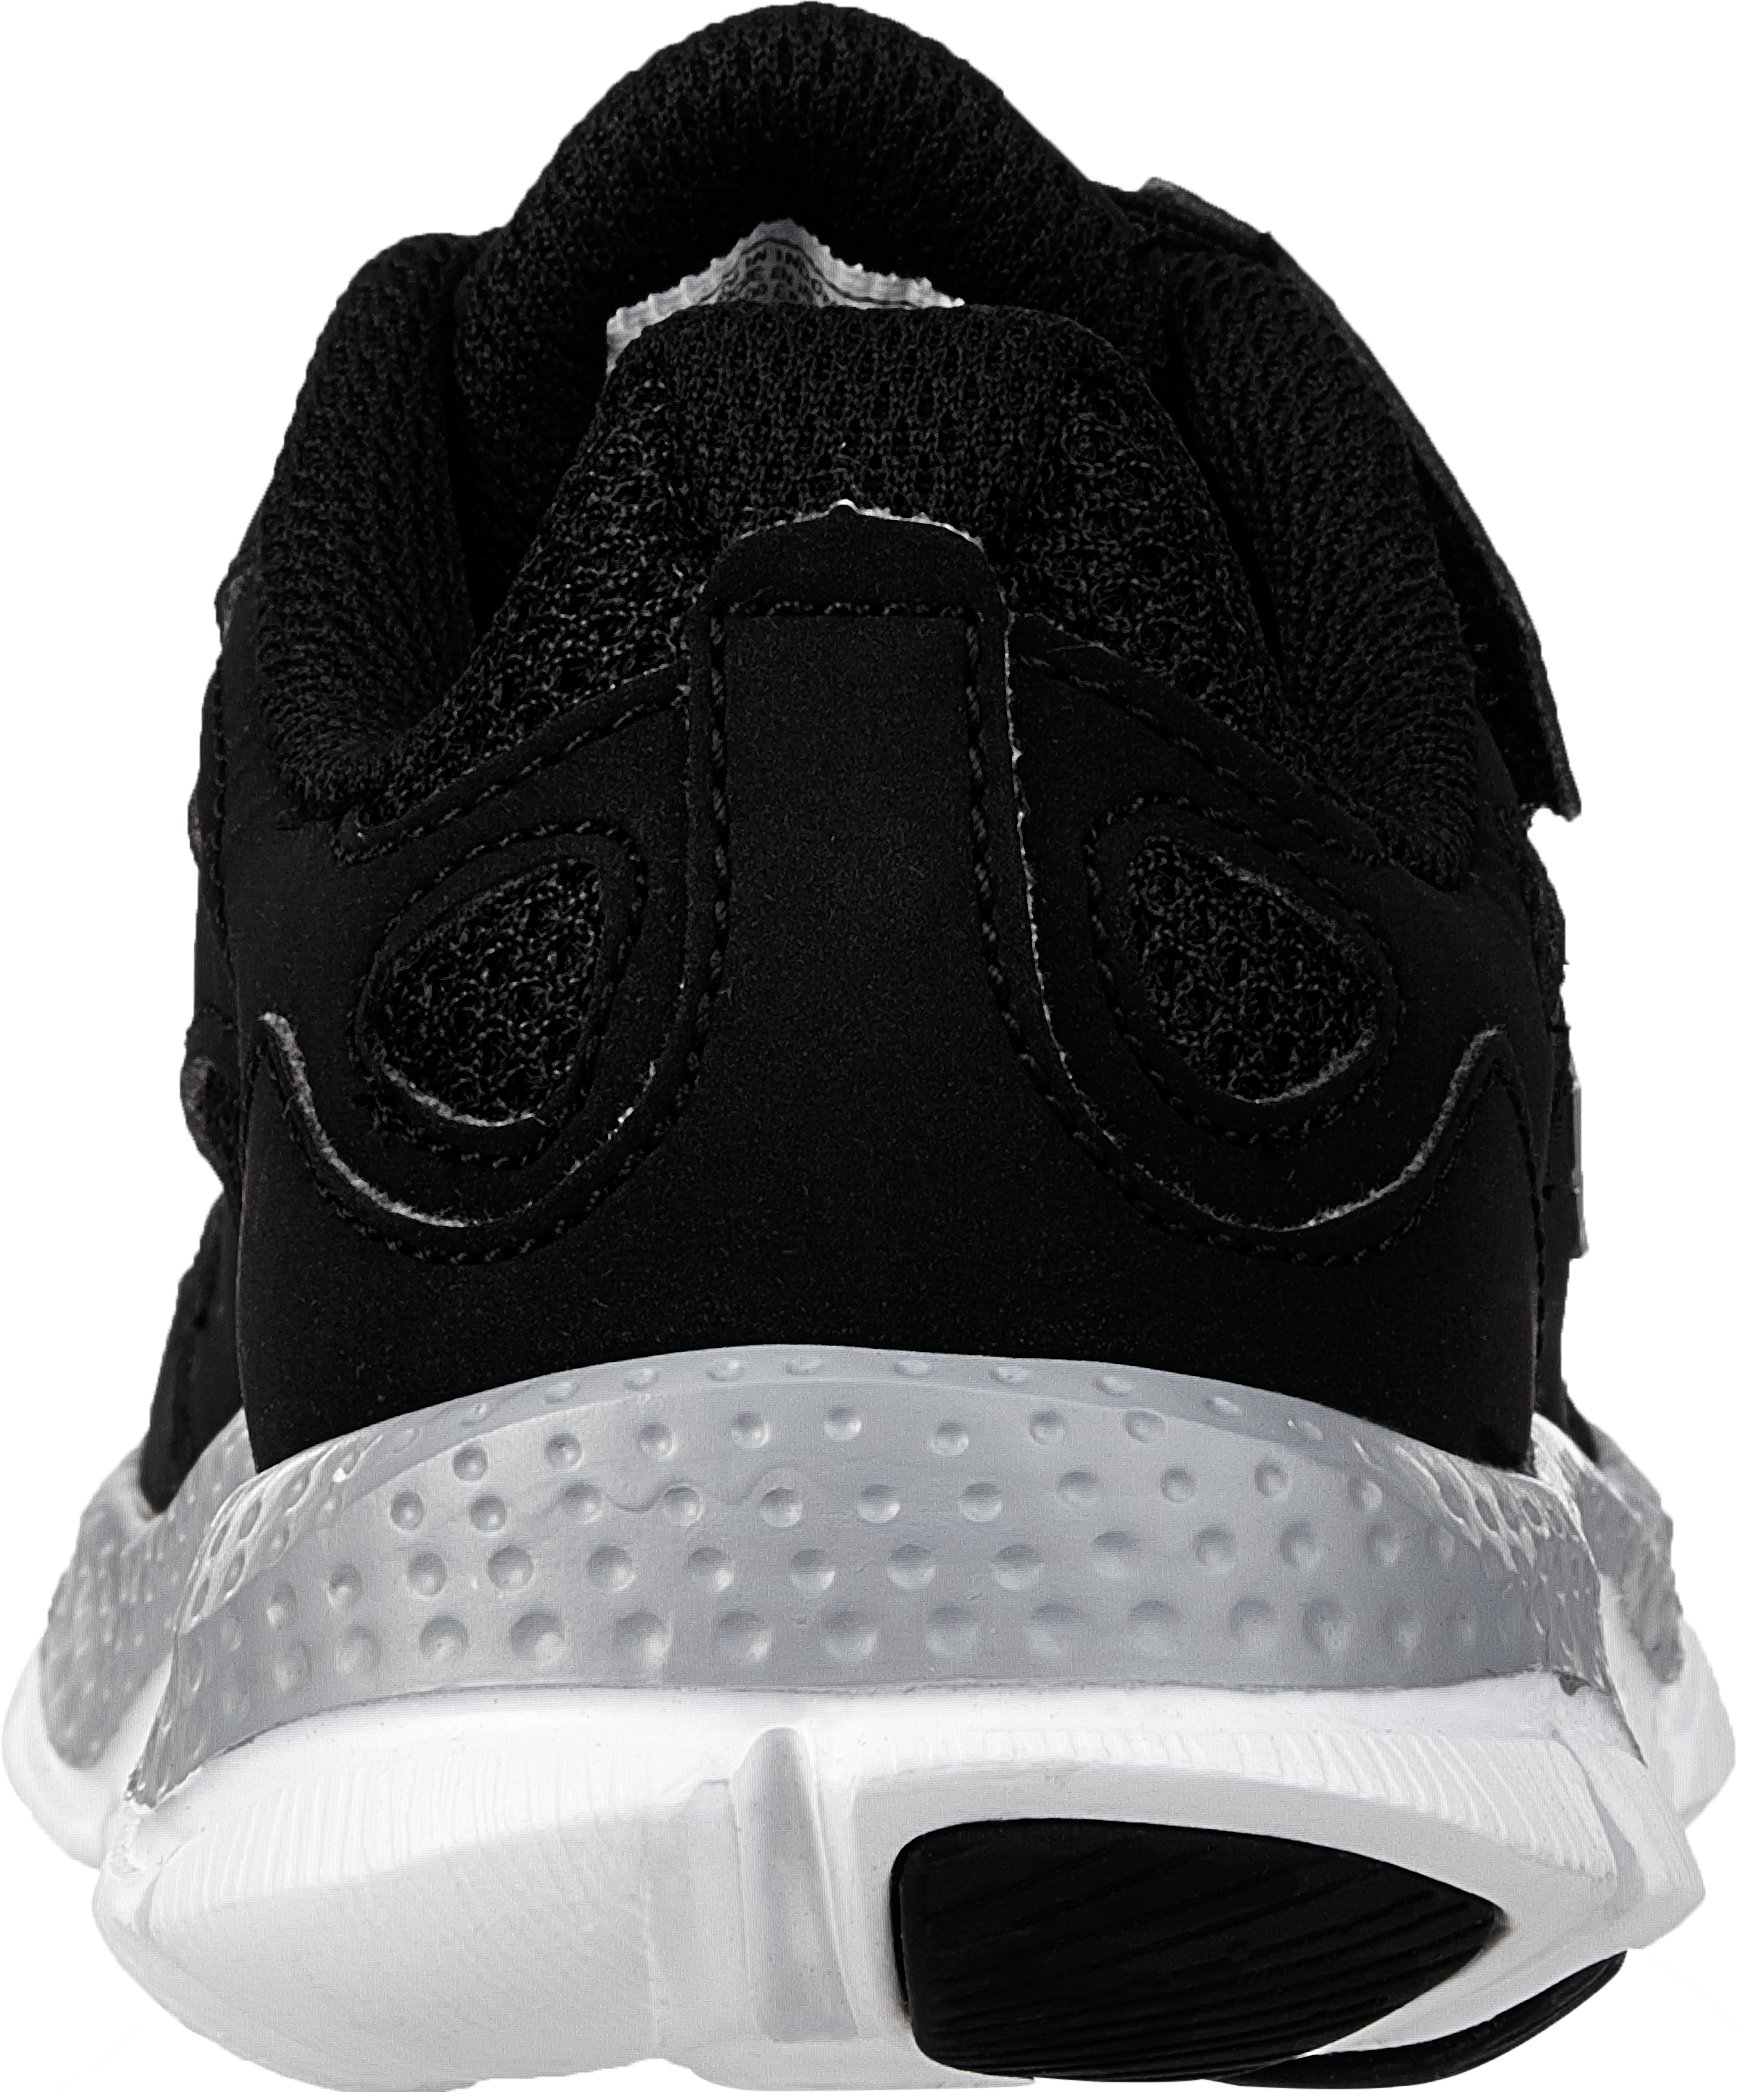 Boys' Pre-School UA Engage BL AC Shoes, Black , undefined